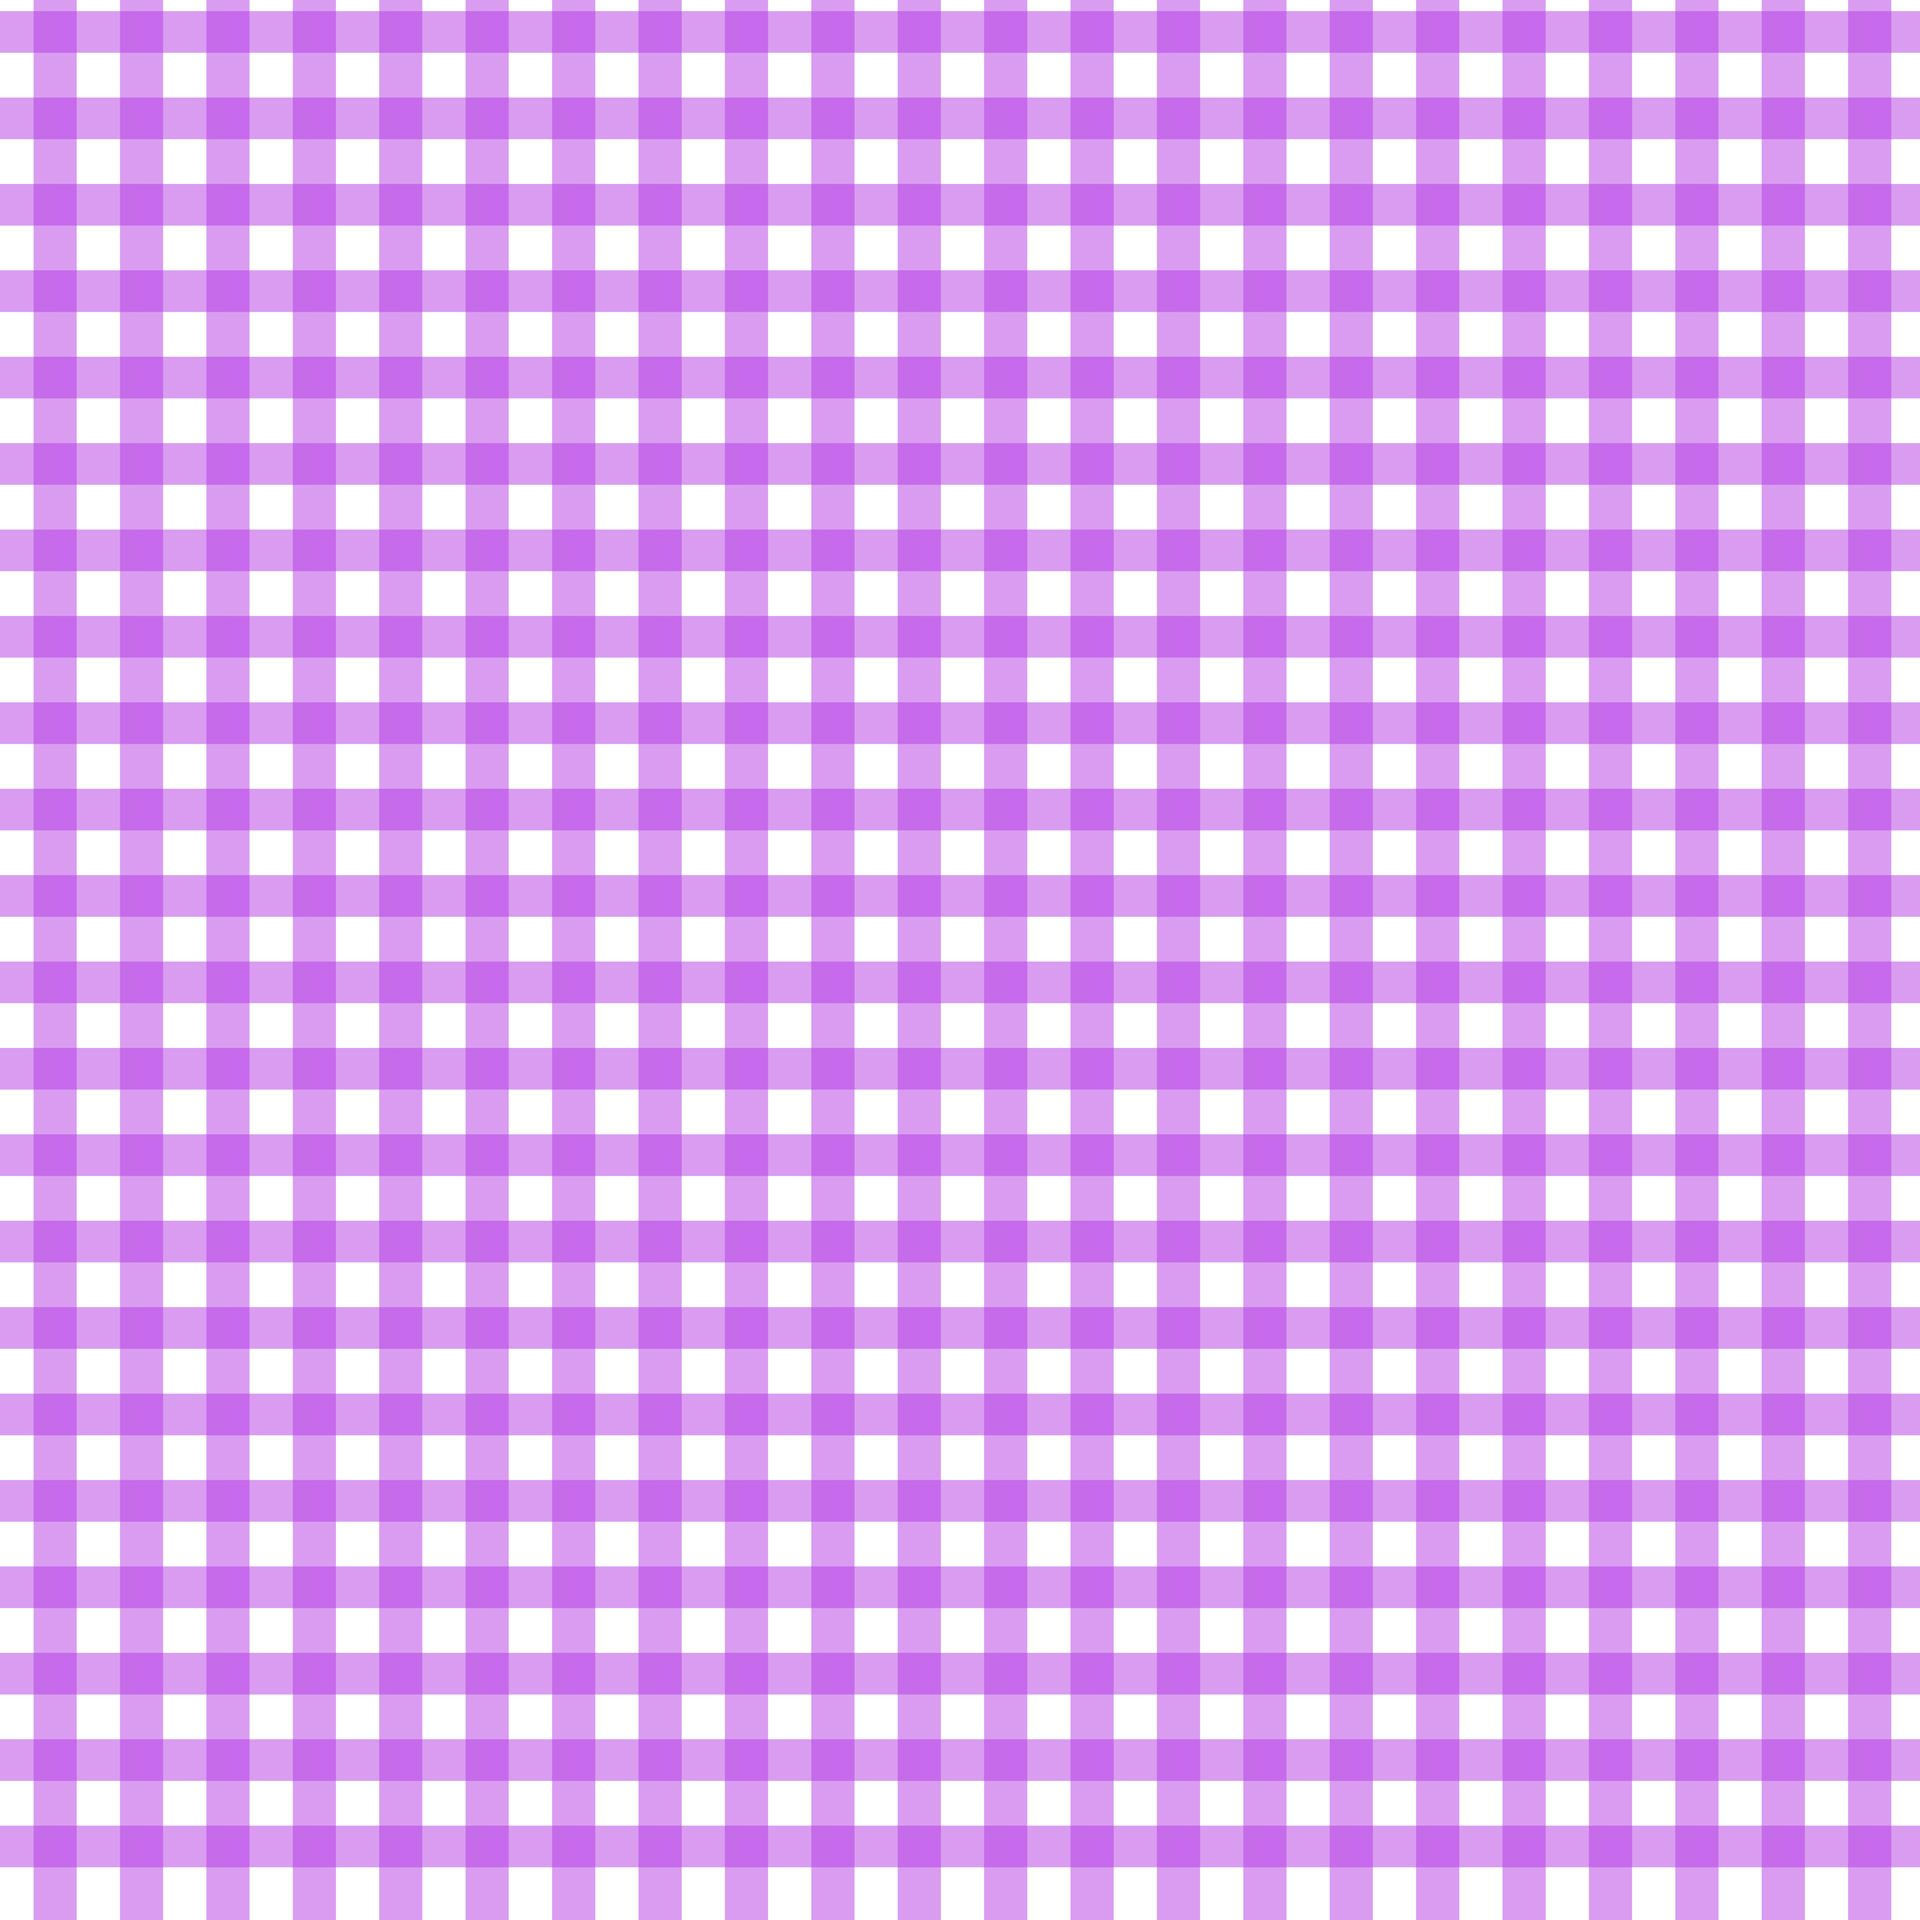 Wooden kitchen chair free stock photo public domain pictures - Purple Check Background Pattern Free Stock Photo Public Domain Pictures